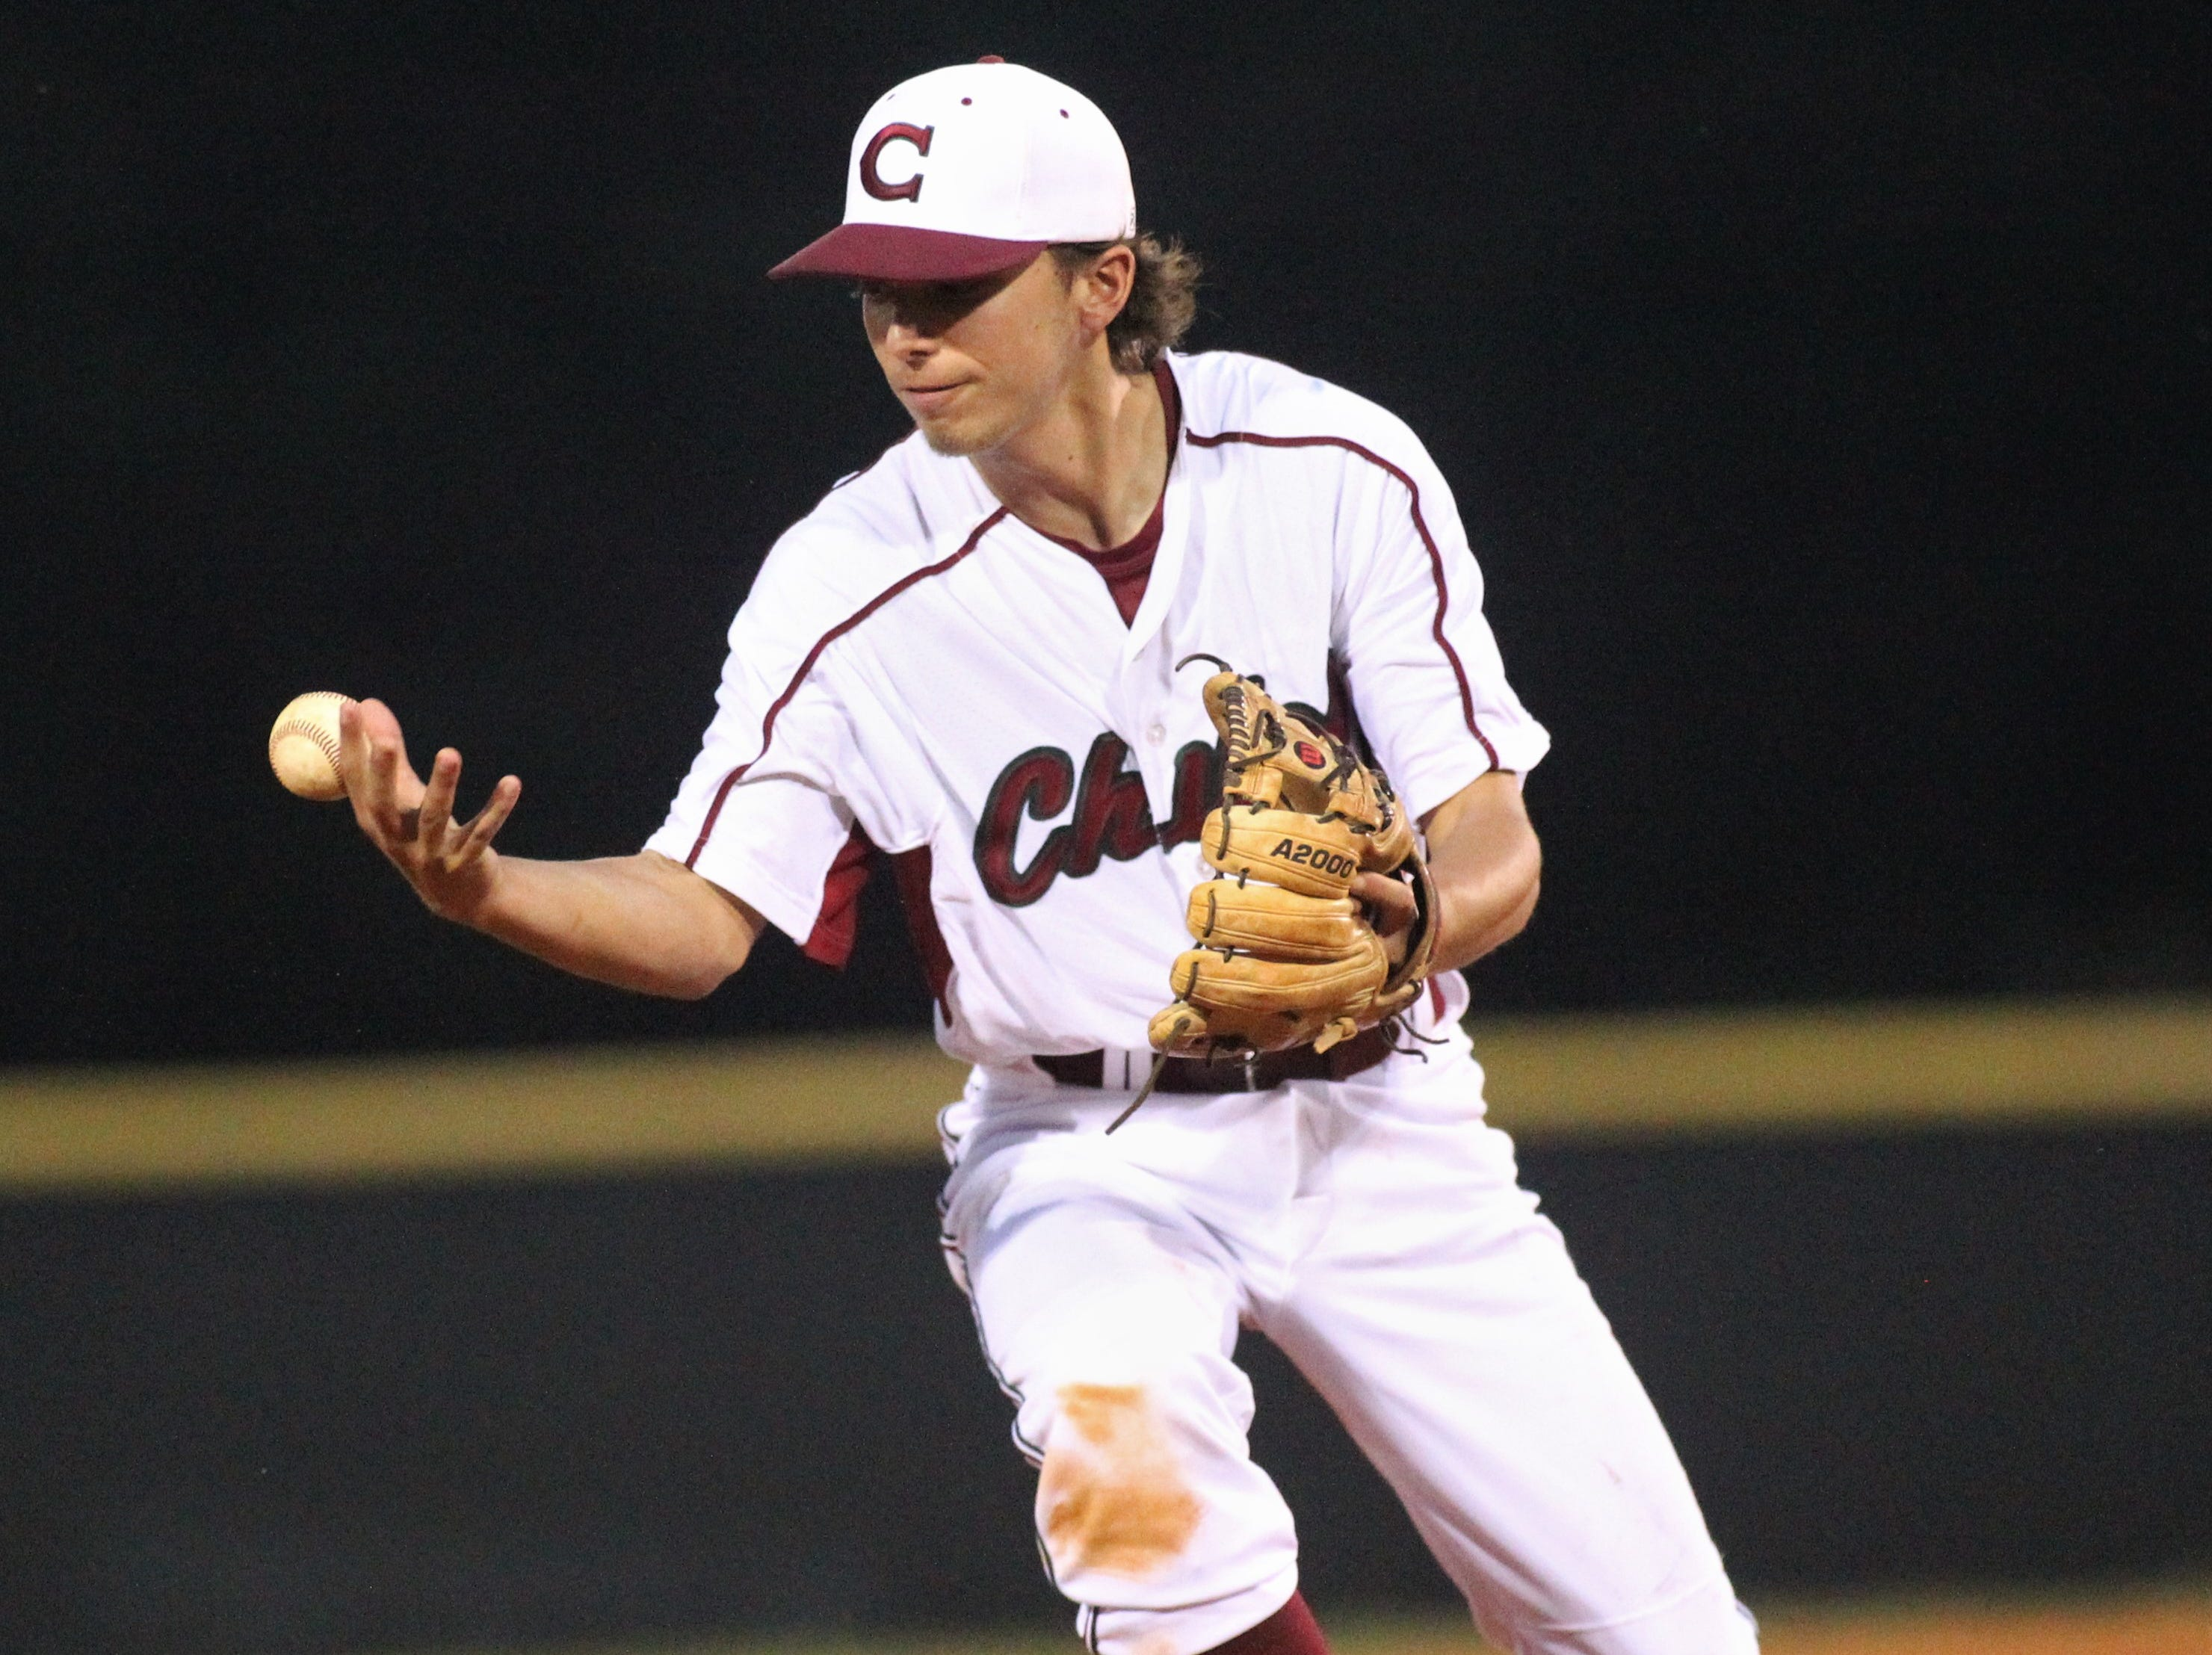 Chiles shortstop Mason Correa can't handle a hop as Chiles won an 11-6 home game against Leon on Friday, April 5, 2019, to force a season split. The Lions won 3-0 earlier in the week.